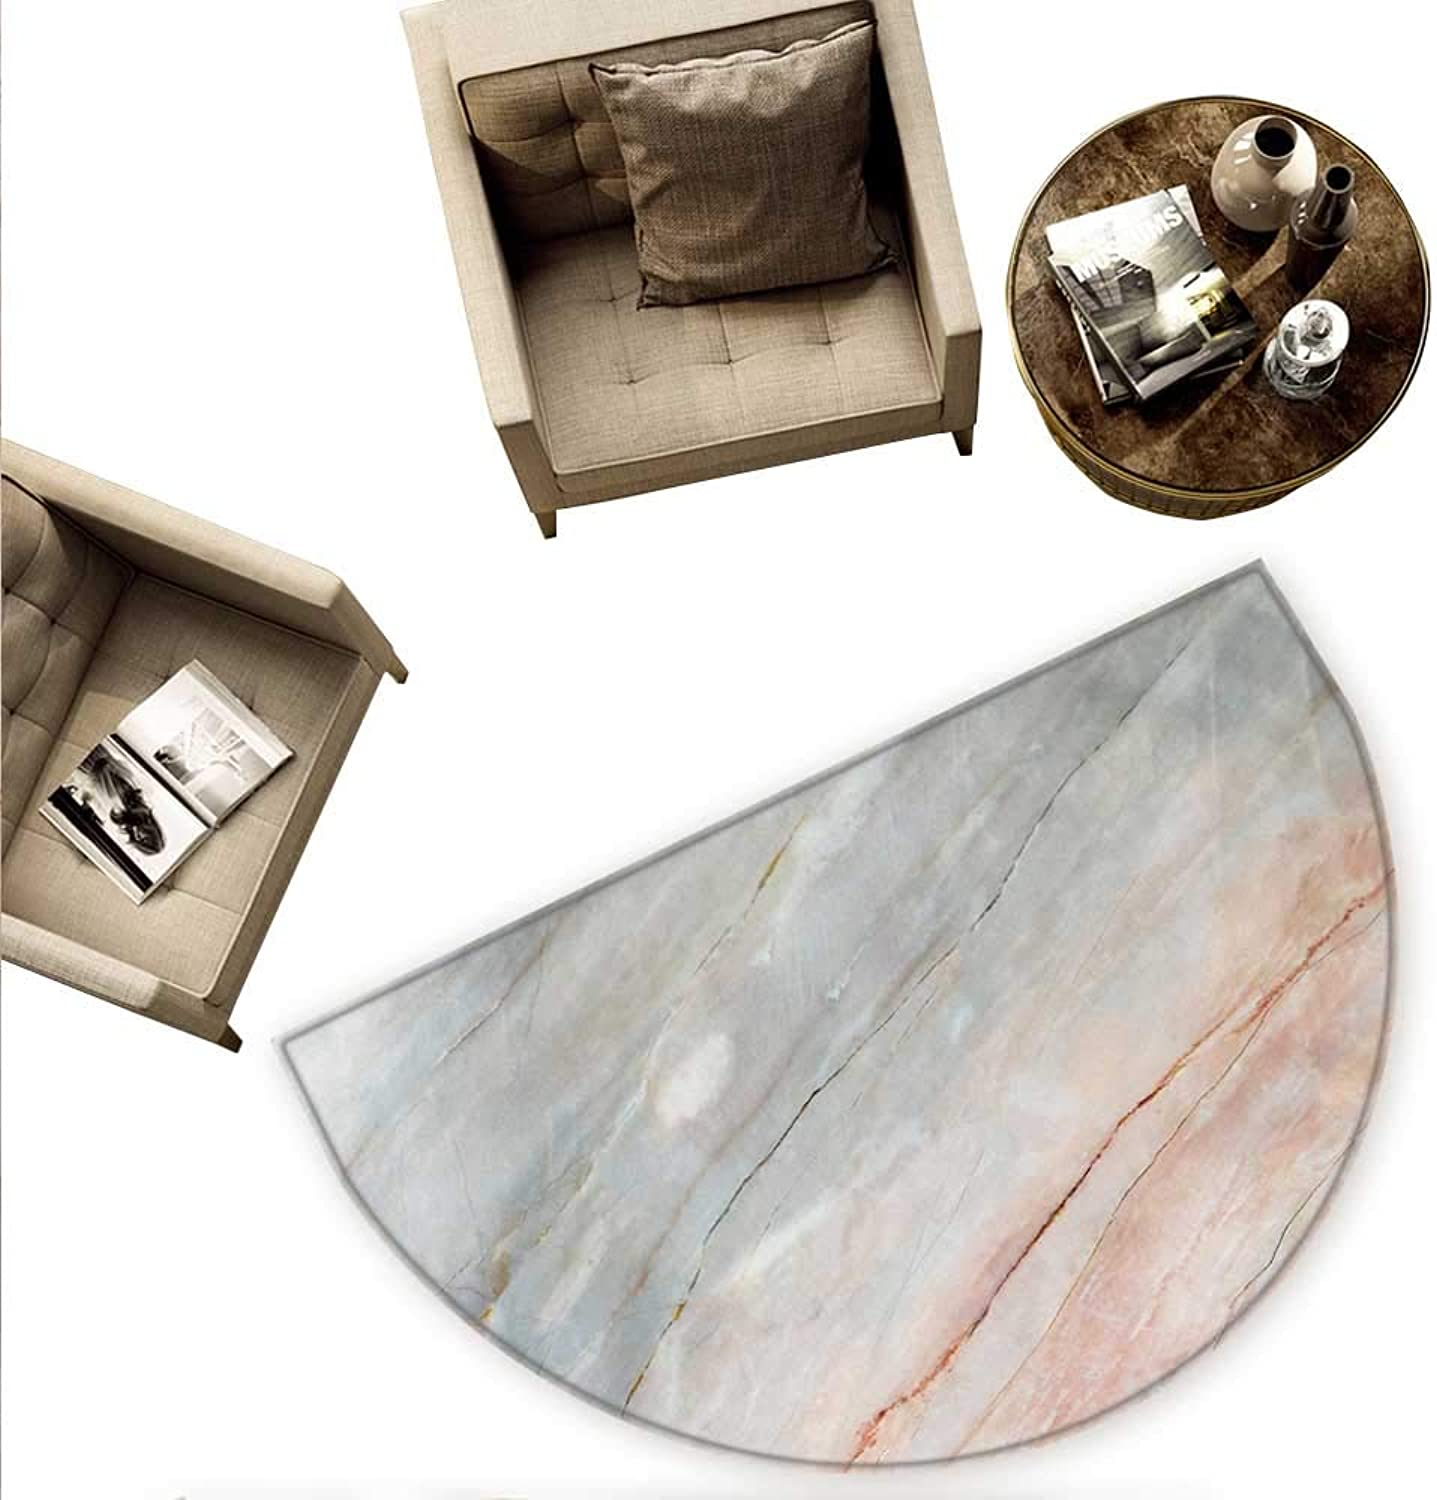 Marble Semicircular Cushion Onyx Stone Textured Natural Featured Authentic Scratches Artful Illustration Entry Door Mat H 59  xD 88.6  Peach Pale Grey